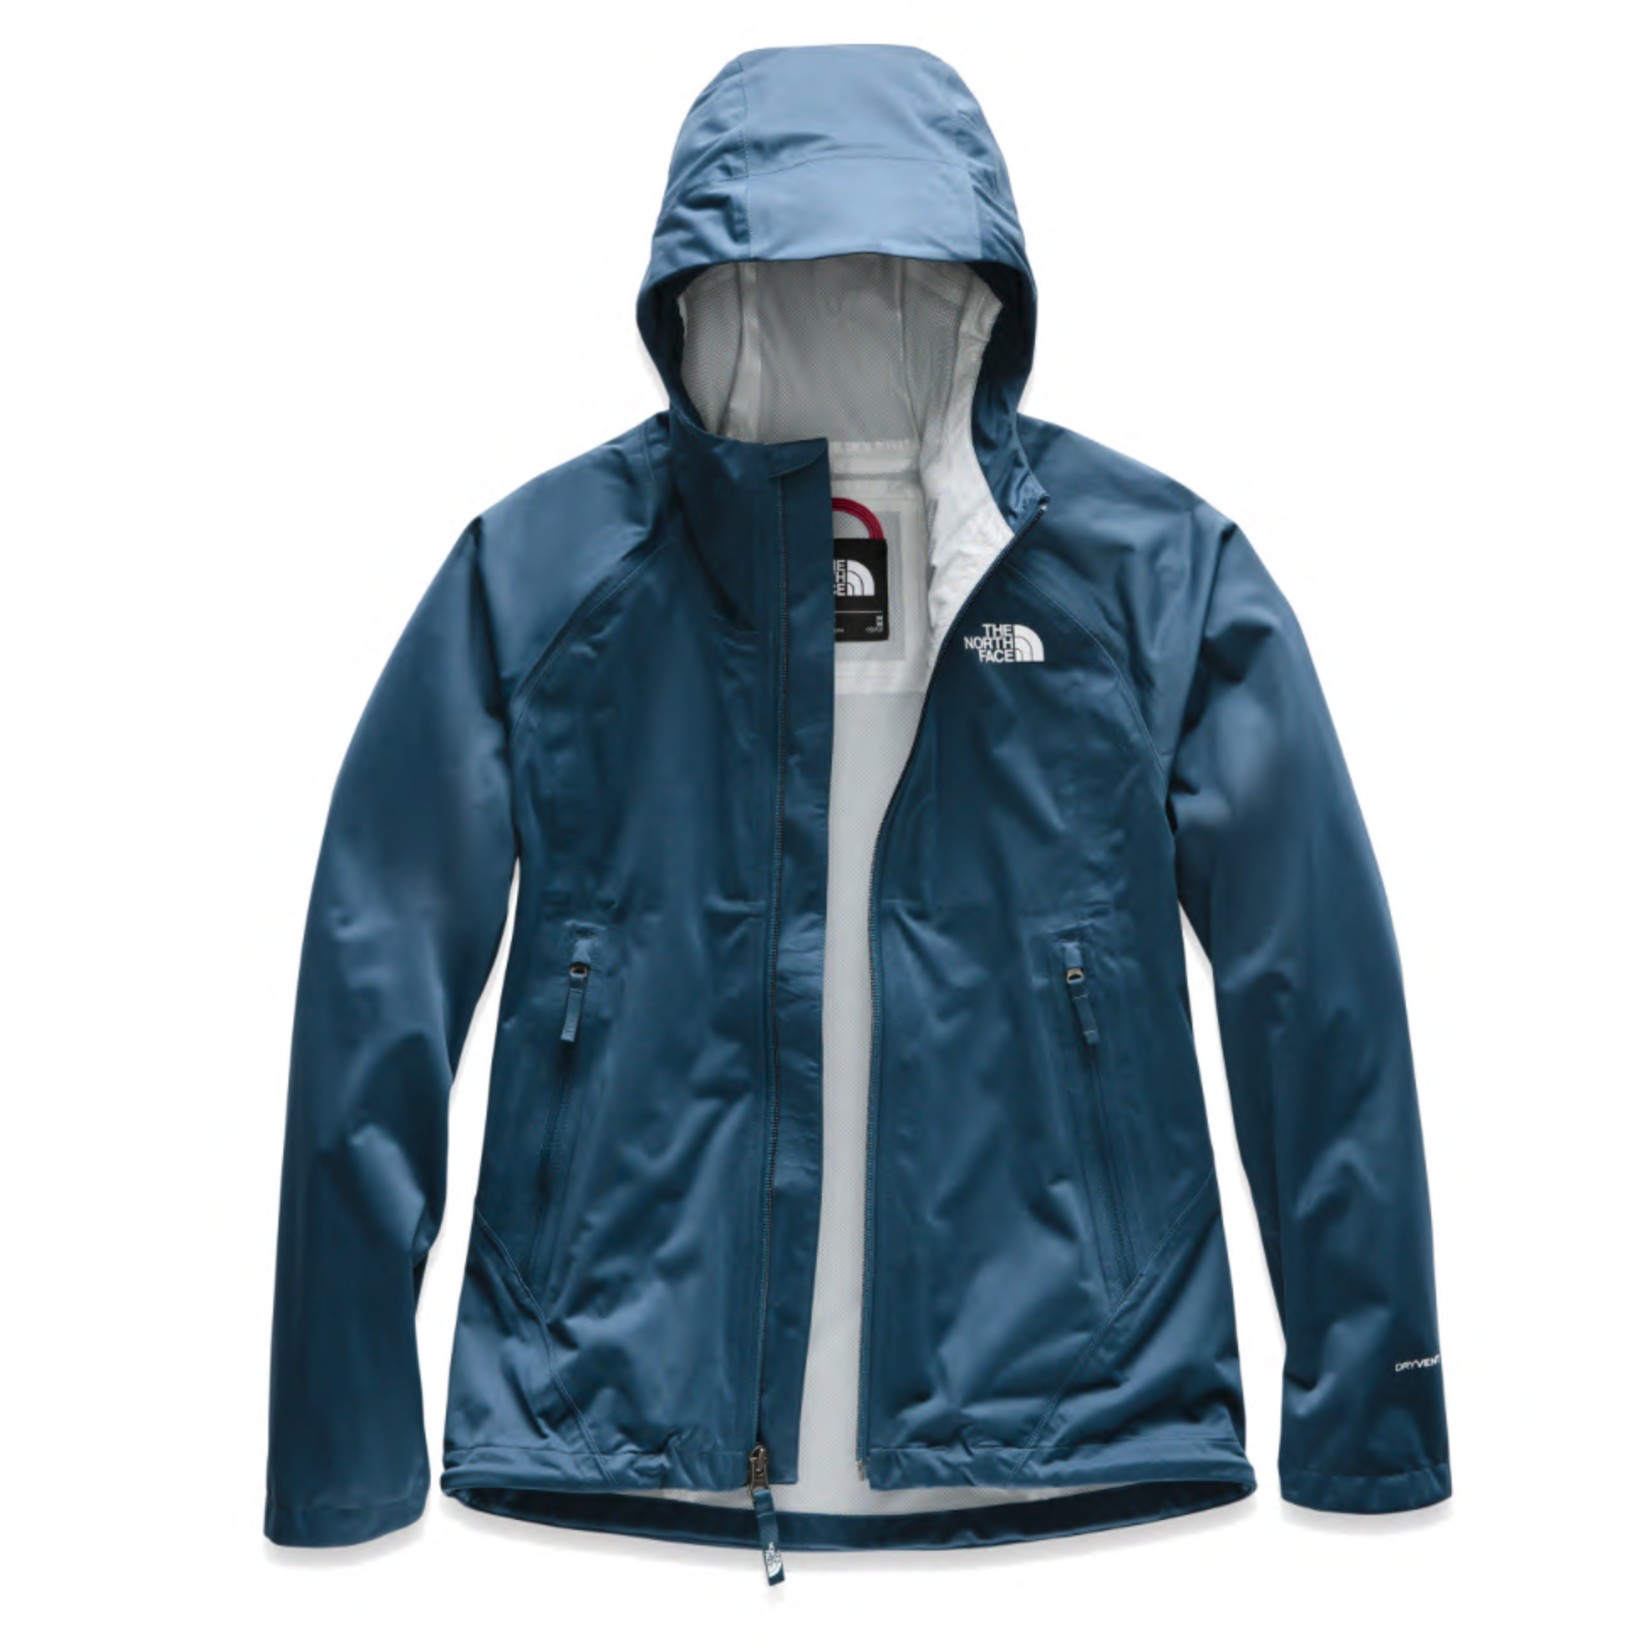 G ALLPROOF STRETCH JACKET - P-115547